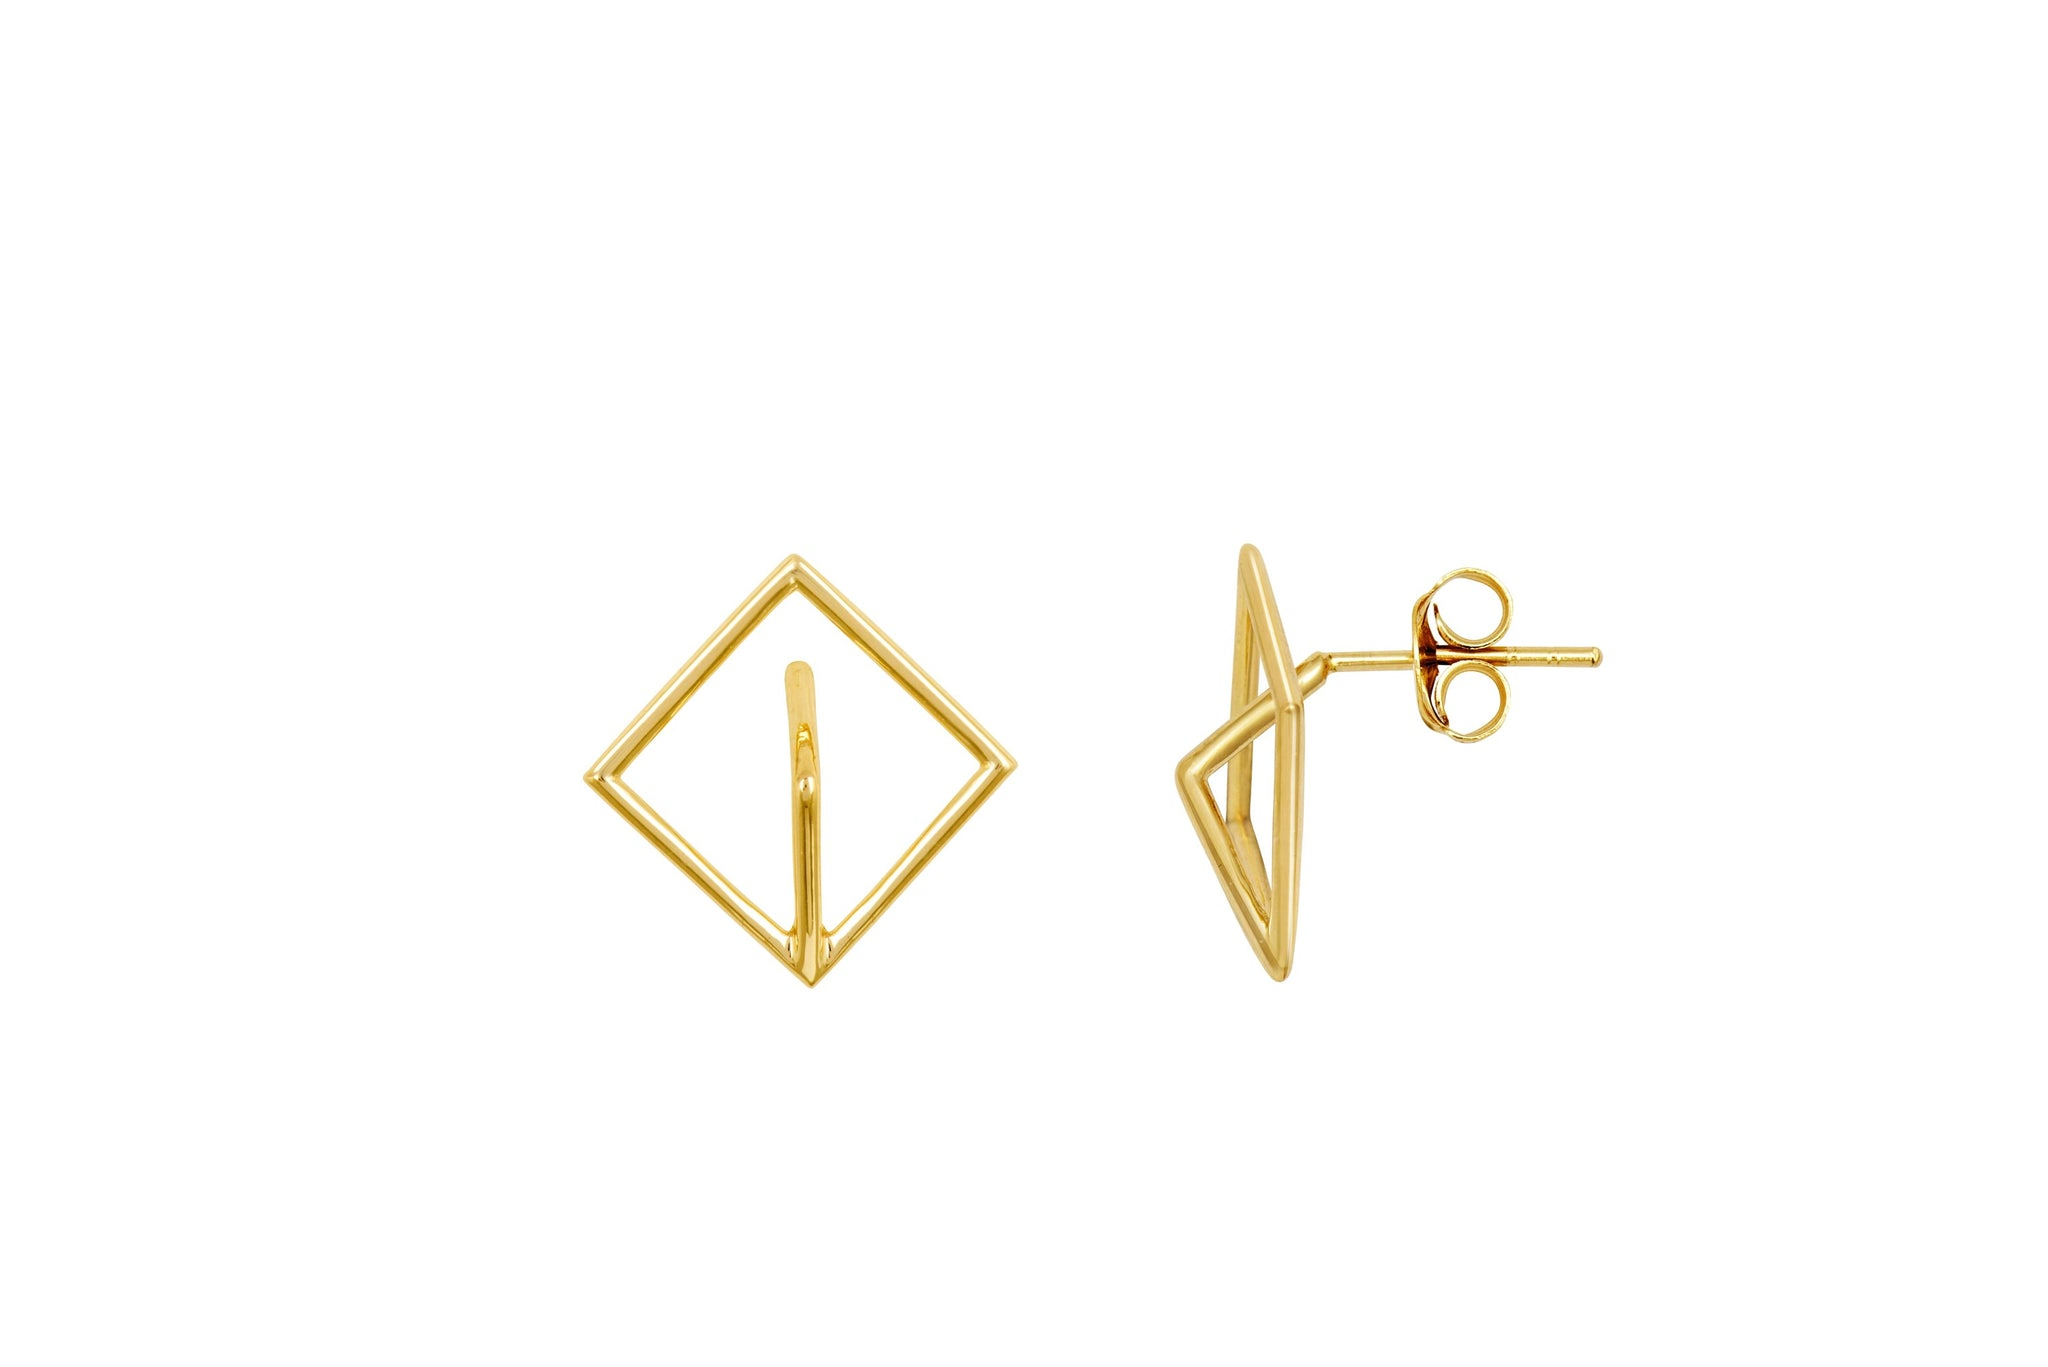 Gold 3D Mountain Stud Earrings